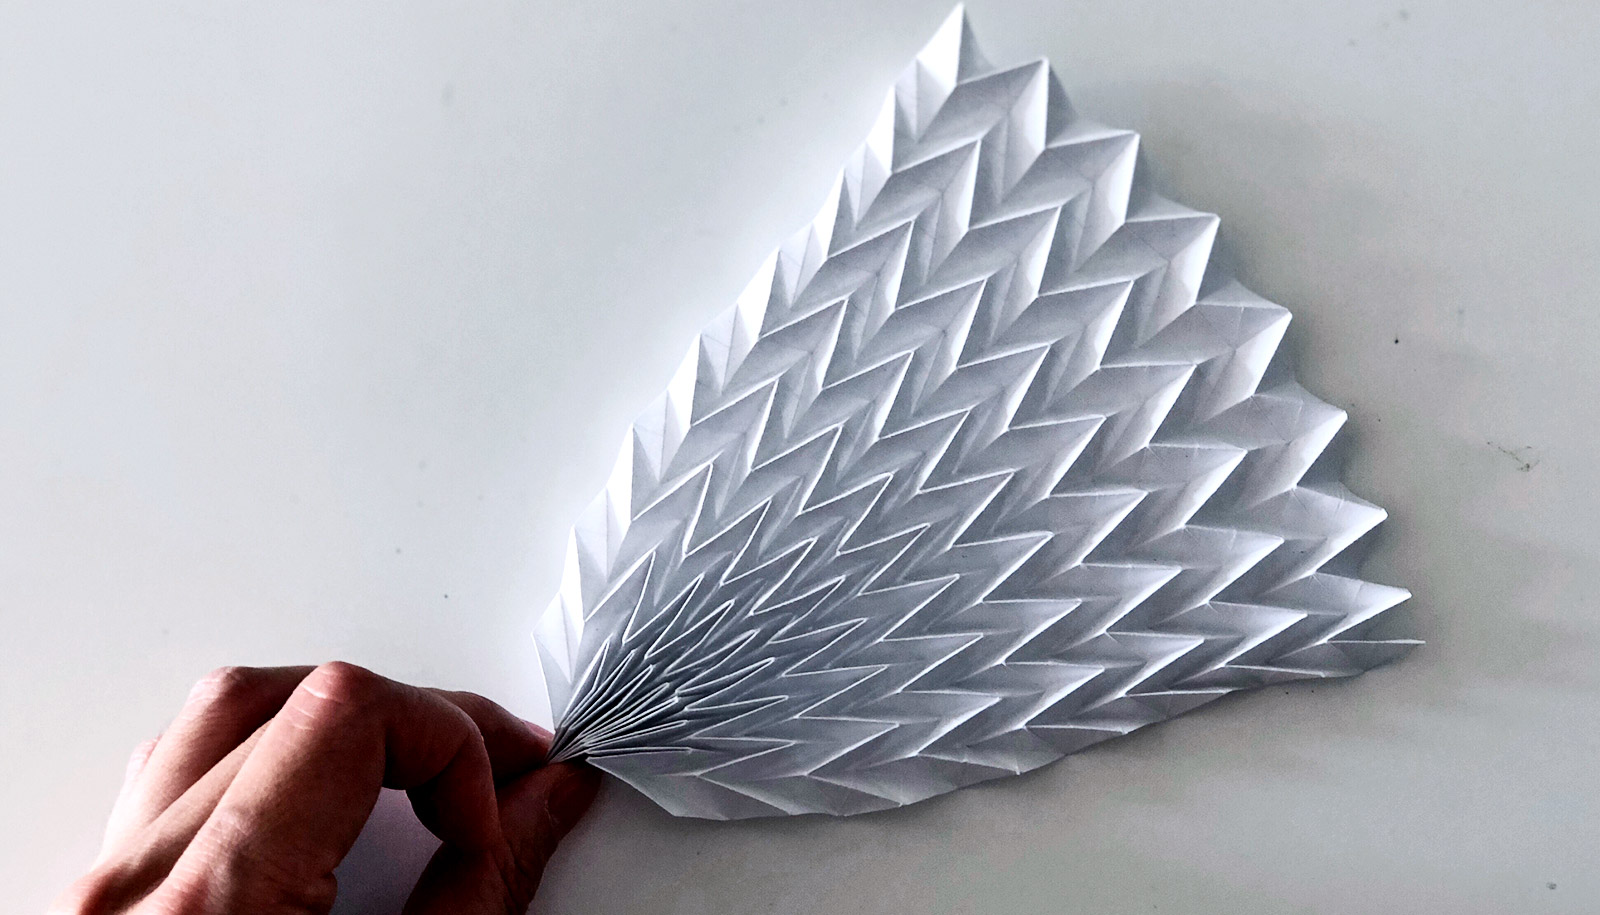 Shape-shifting origami could lead to better radio antennas